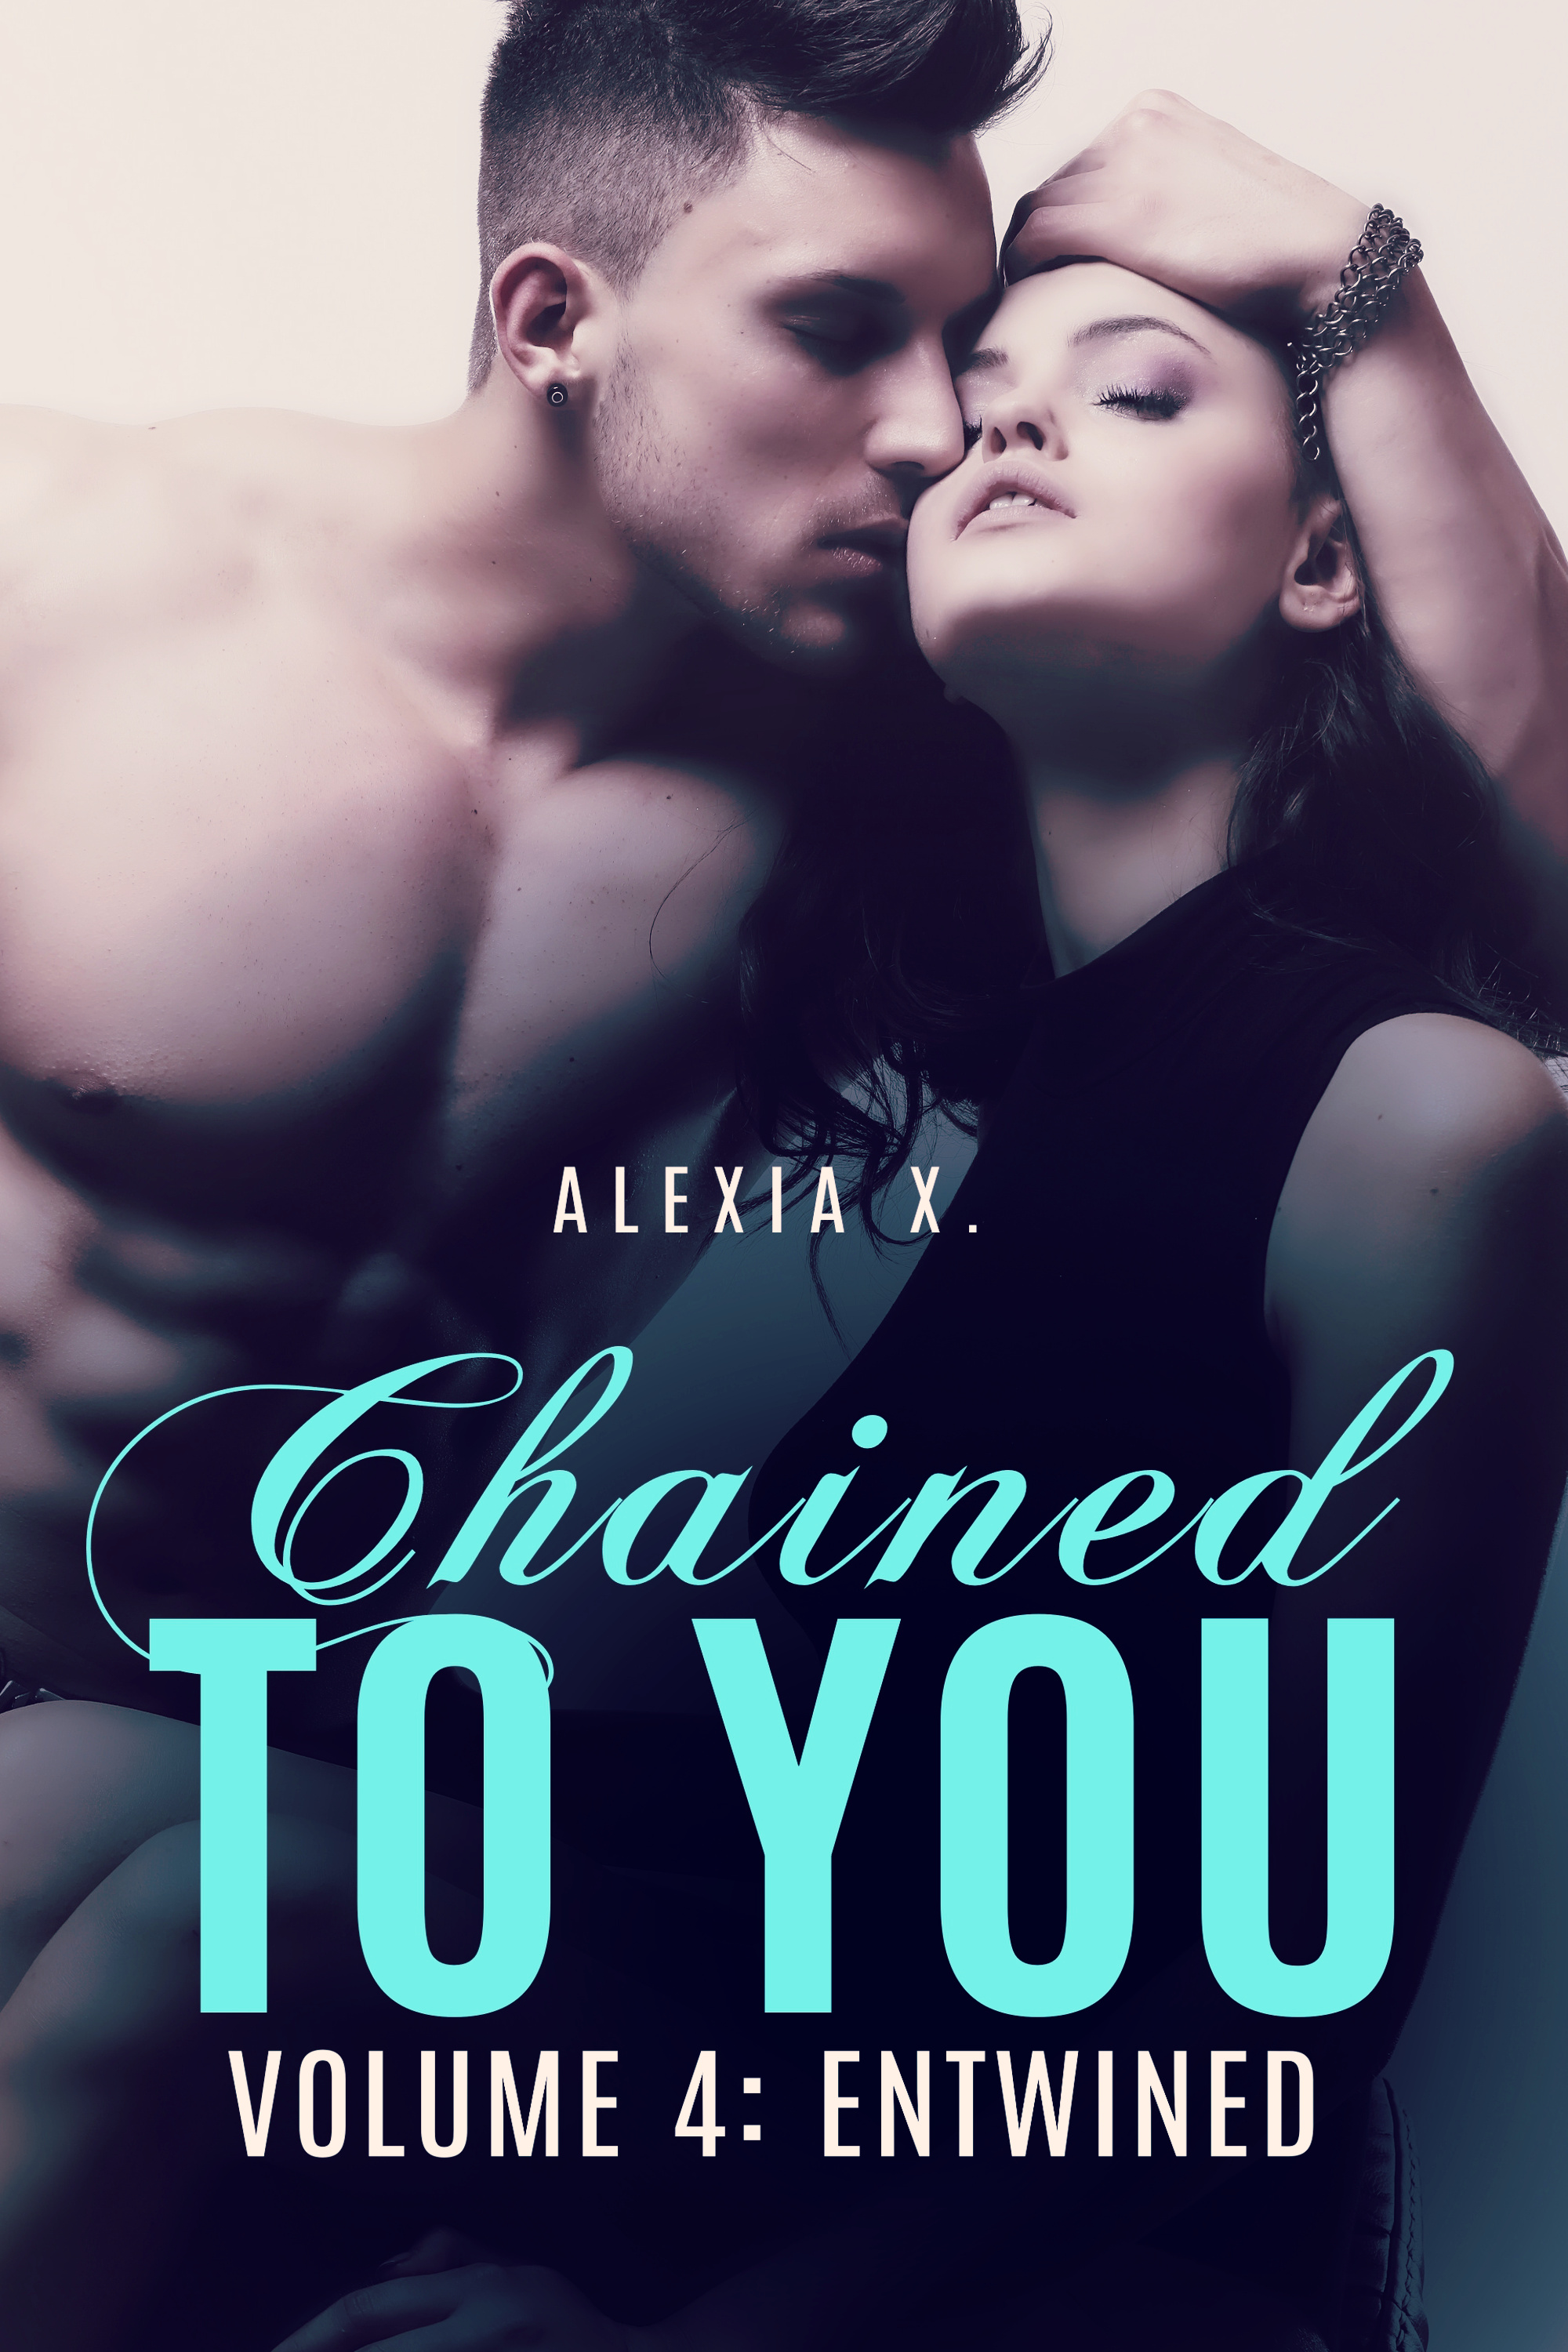 Chained to You Vol. 4